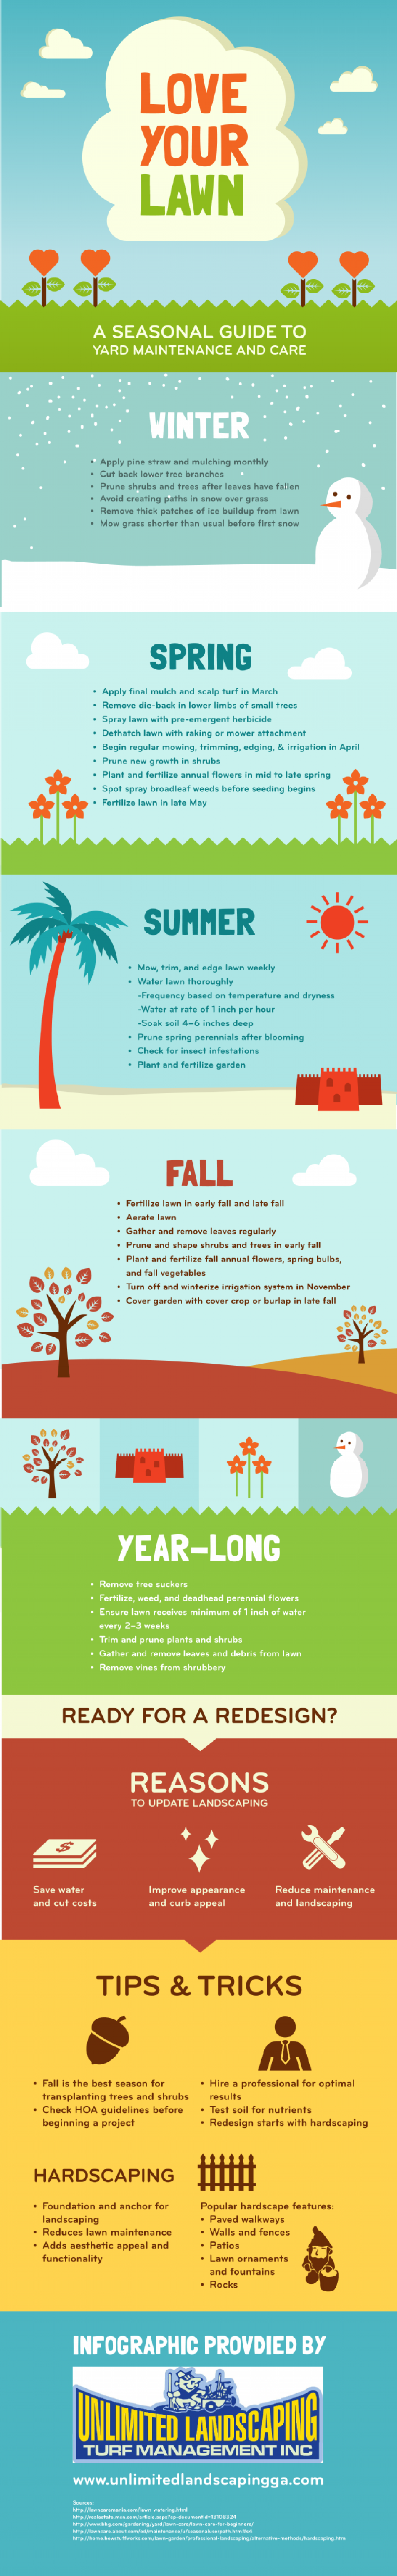 Love Your Lawn: A Seasonal Guide to Yard Maintenance and Care Infographic